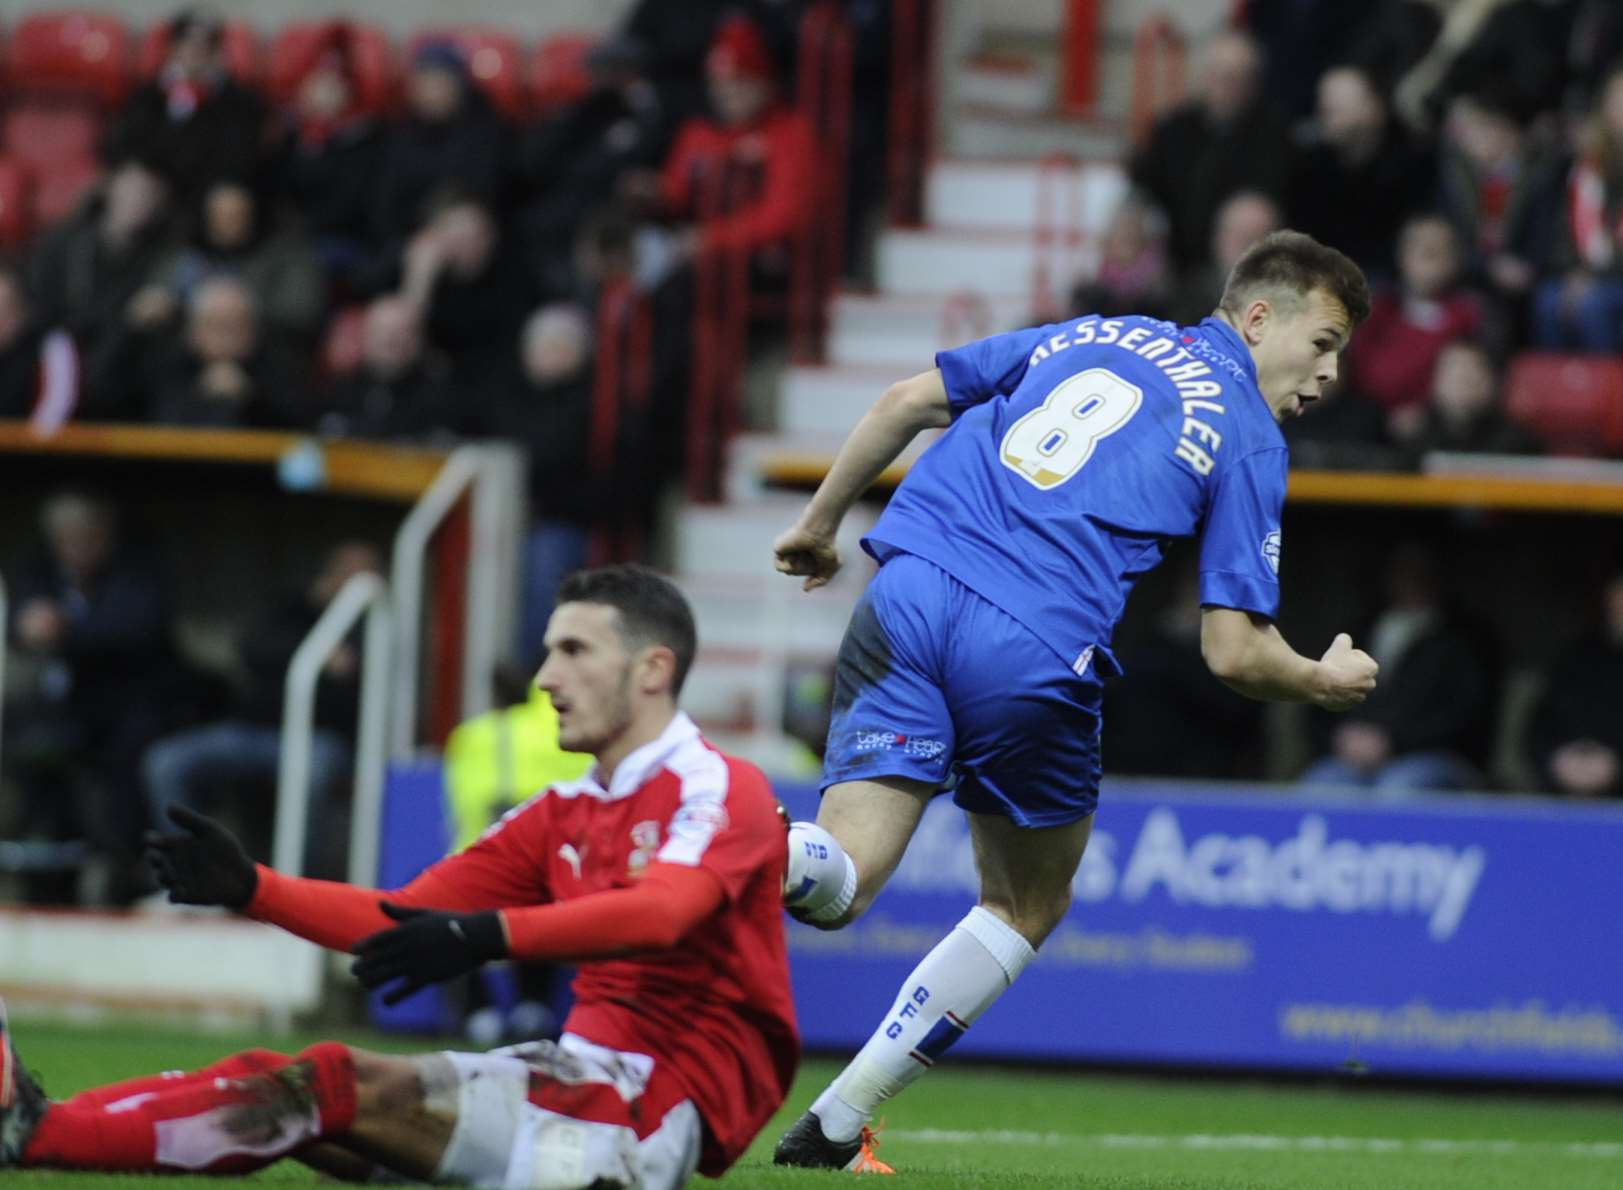 Jake Hessenthaler celebrates putting the Gills ahead Picture: Barry Goodwin